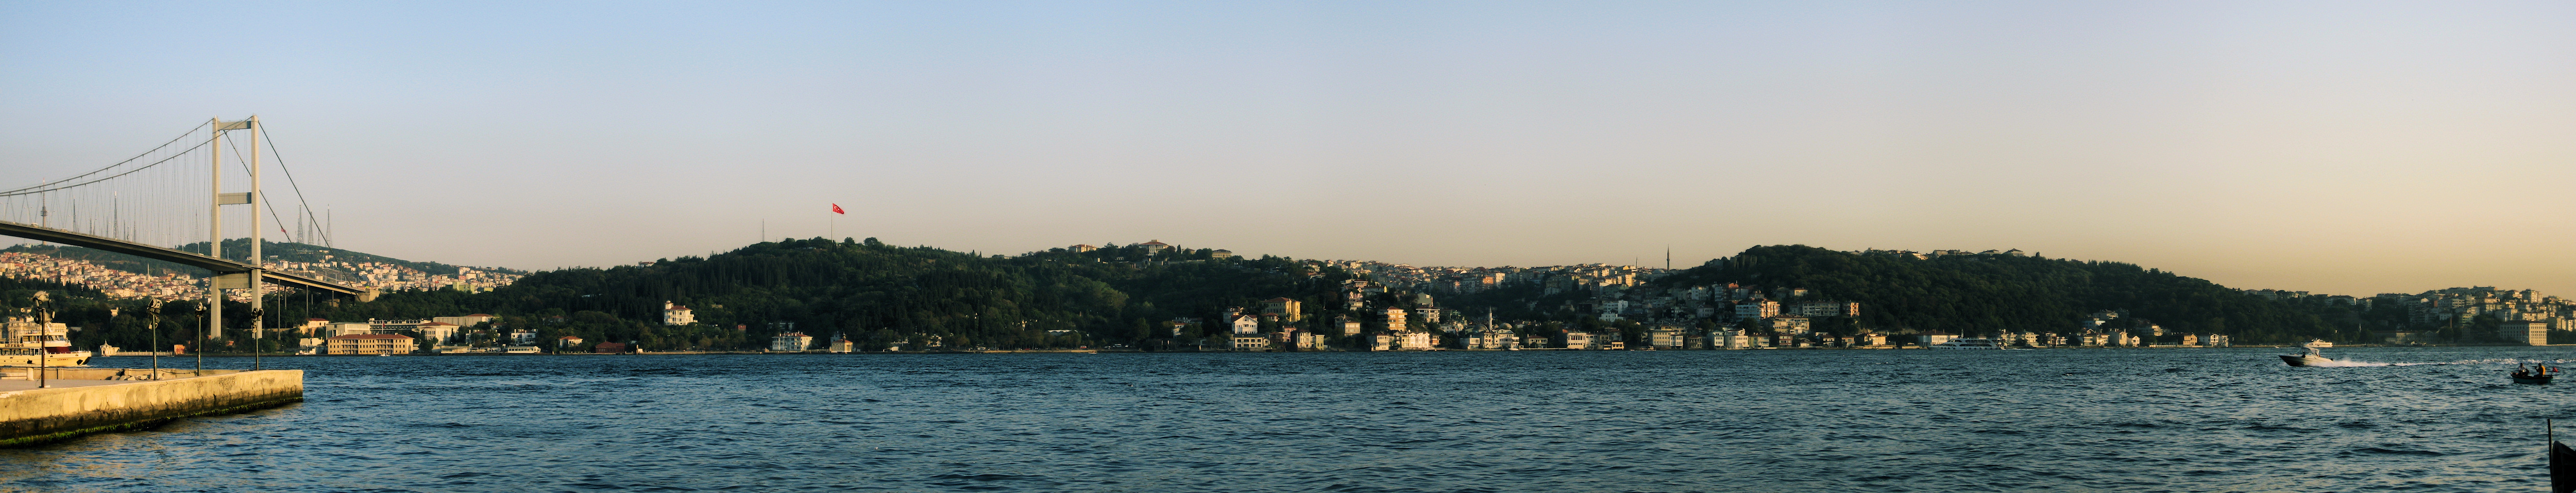 Sunset at Bosphorus by cheyrek